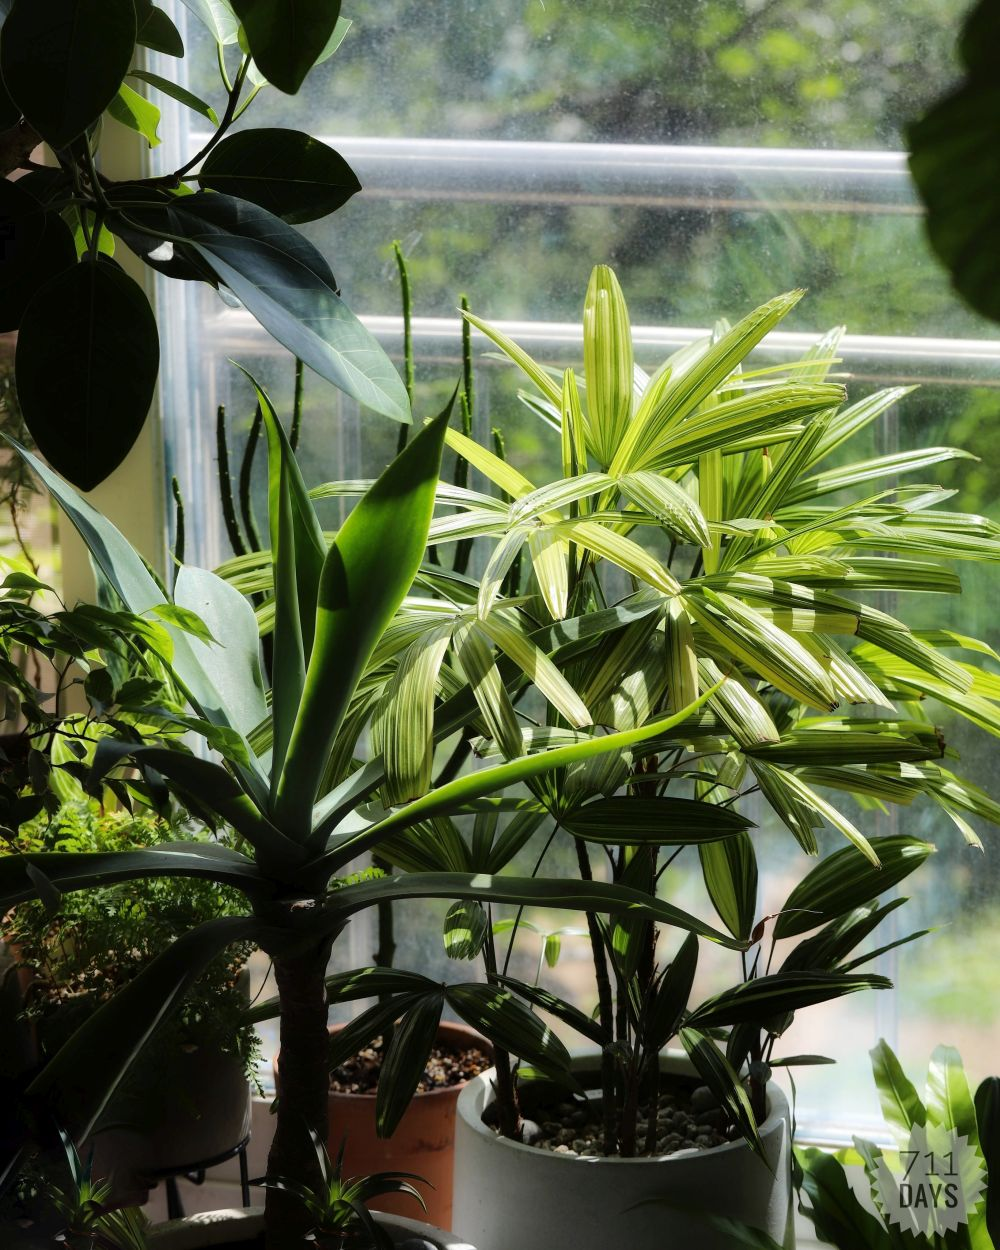 Green bamboo palm tree in a pot